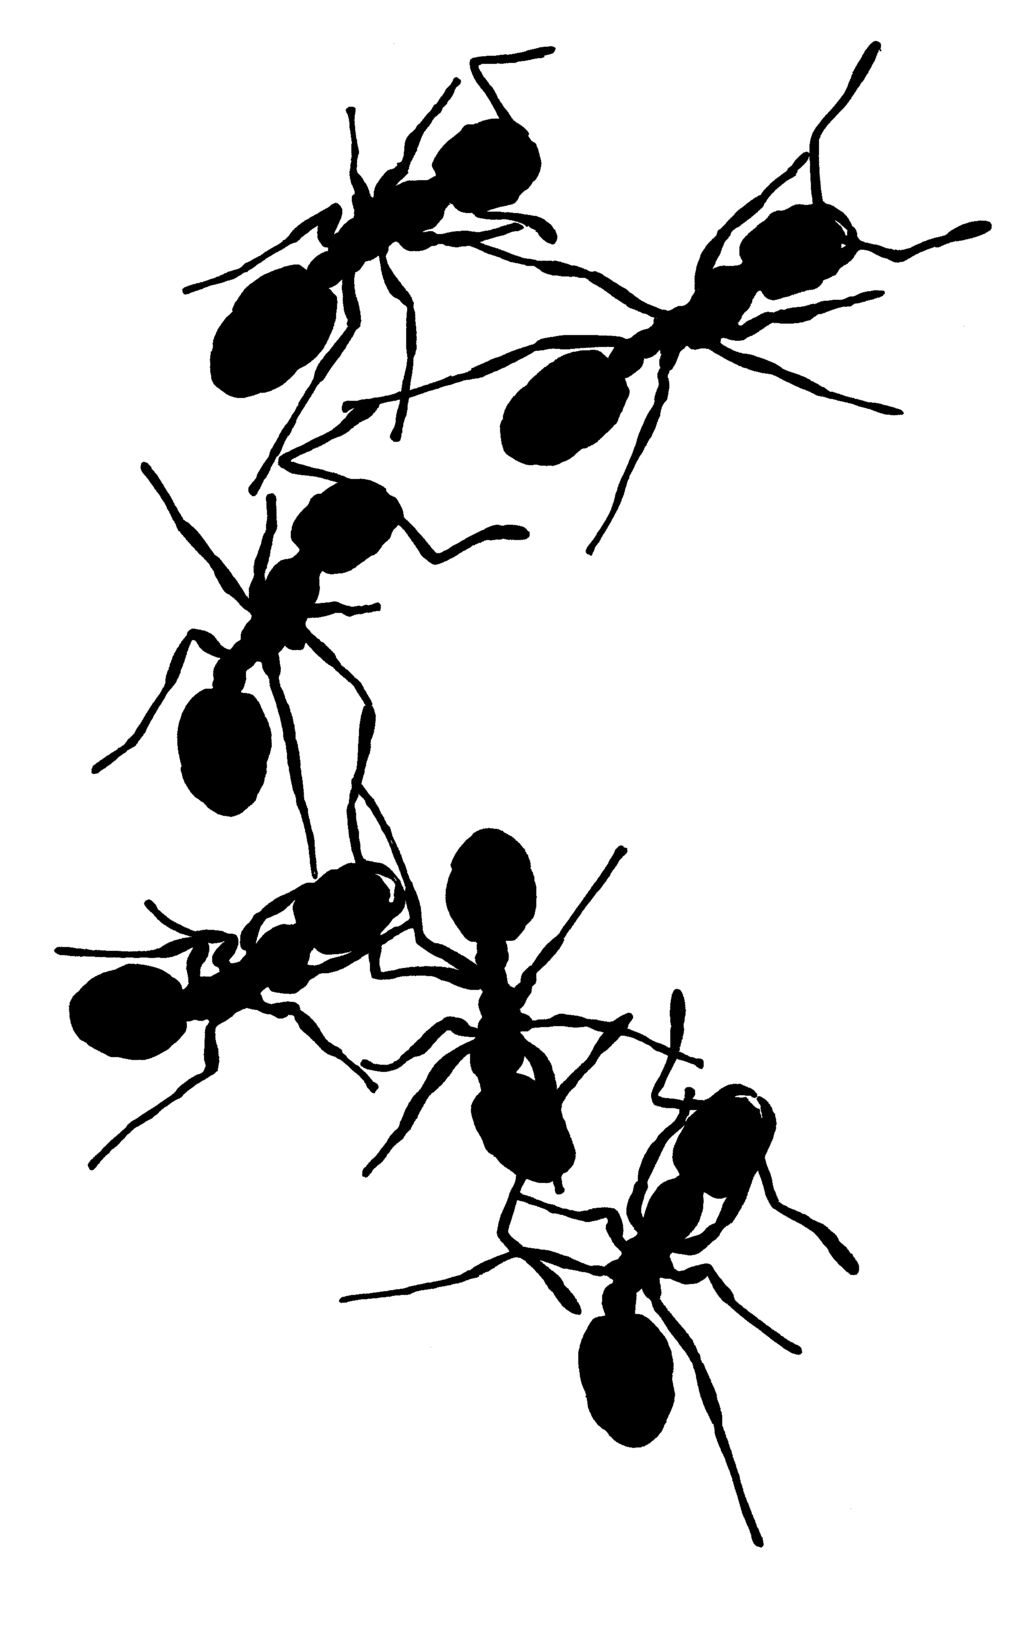 Ant black and white. Ants clipart line